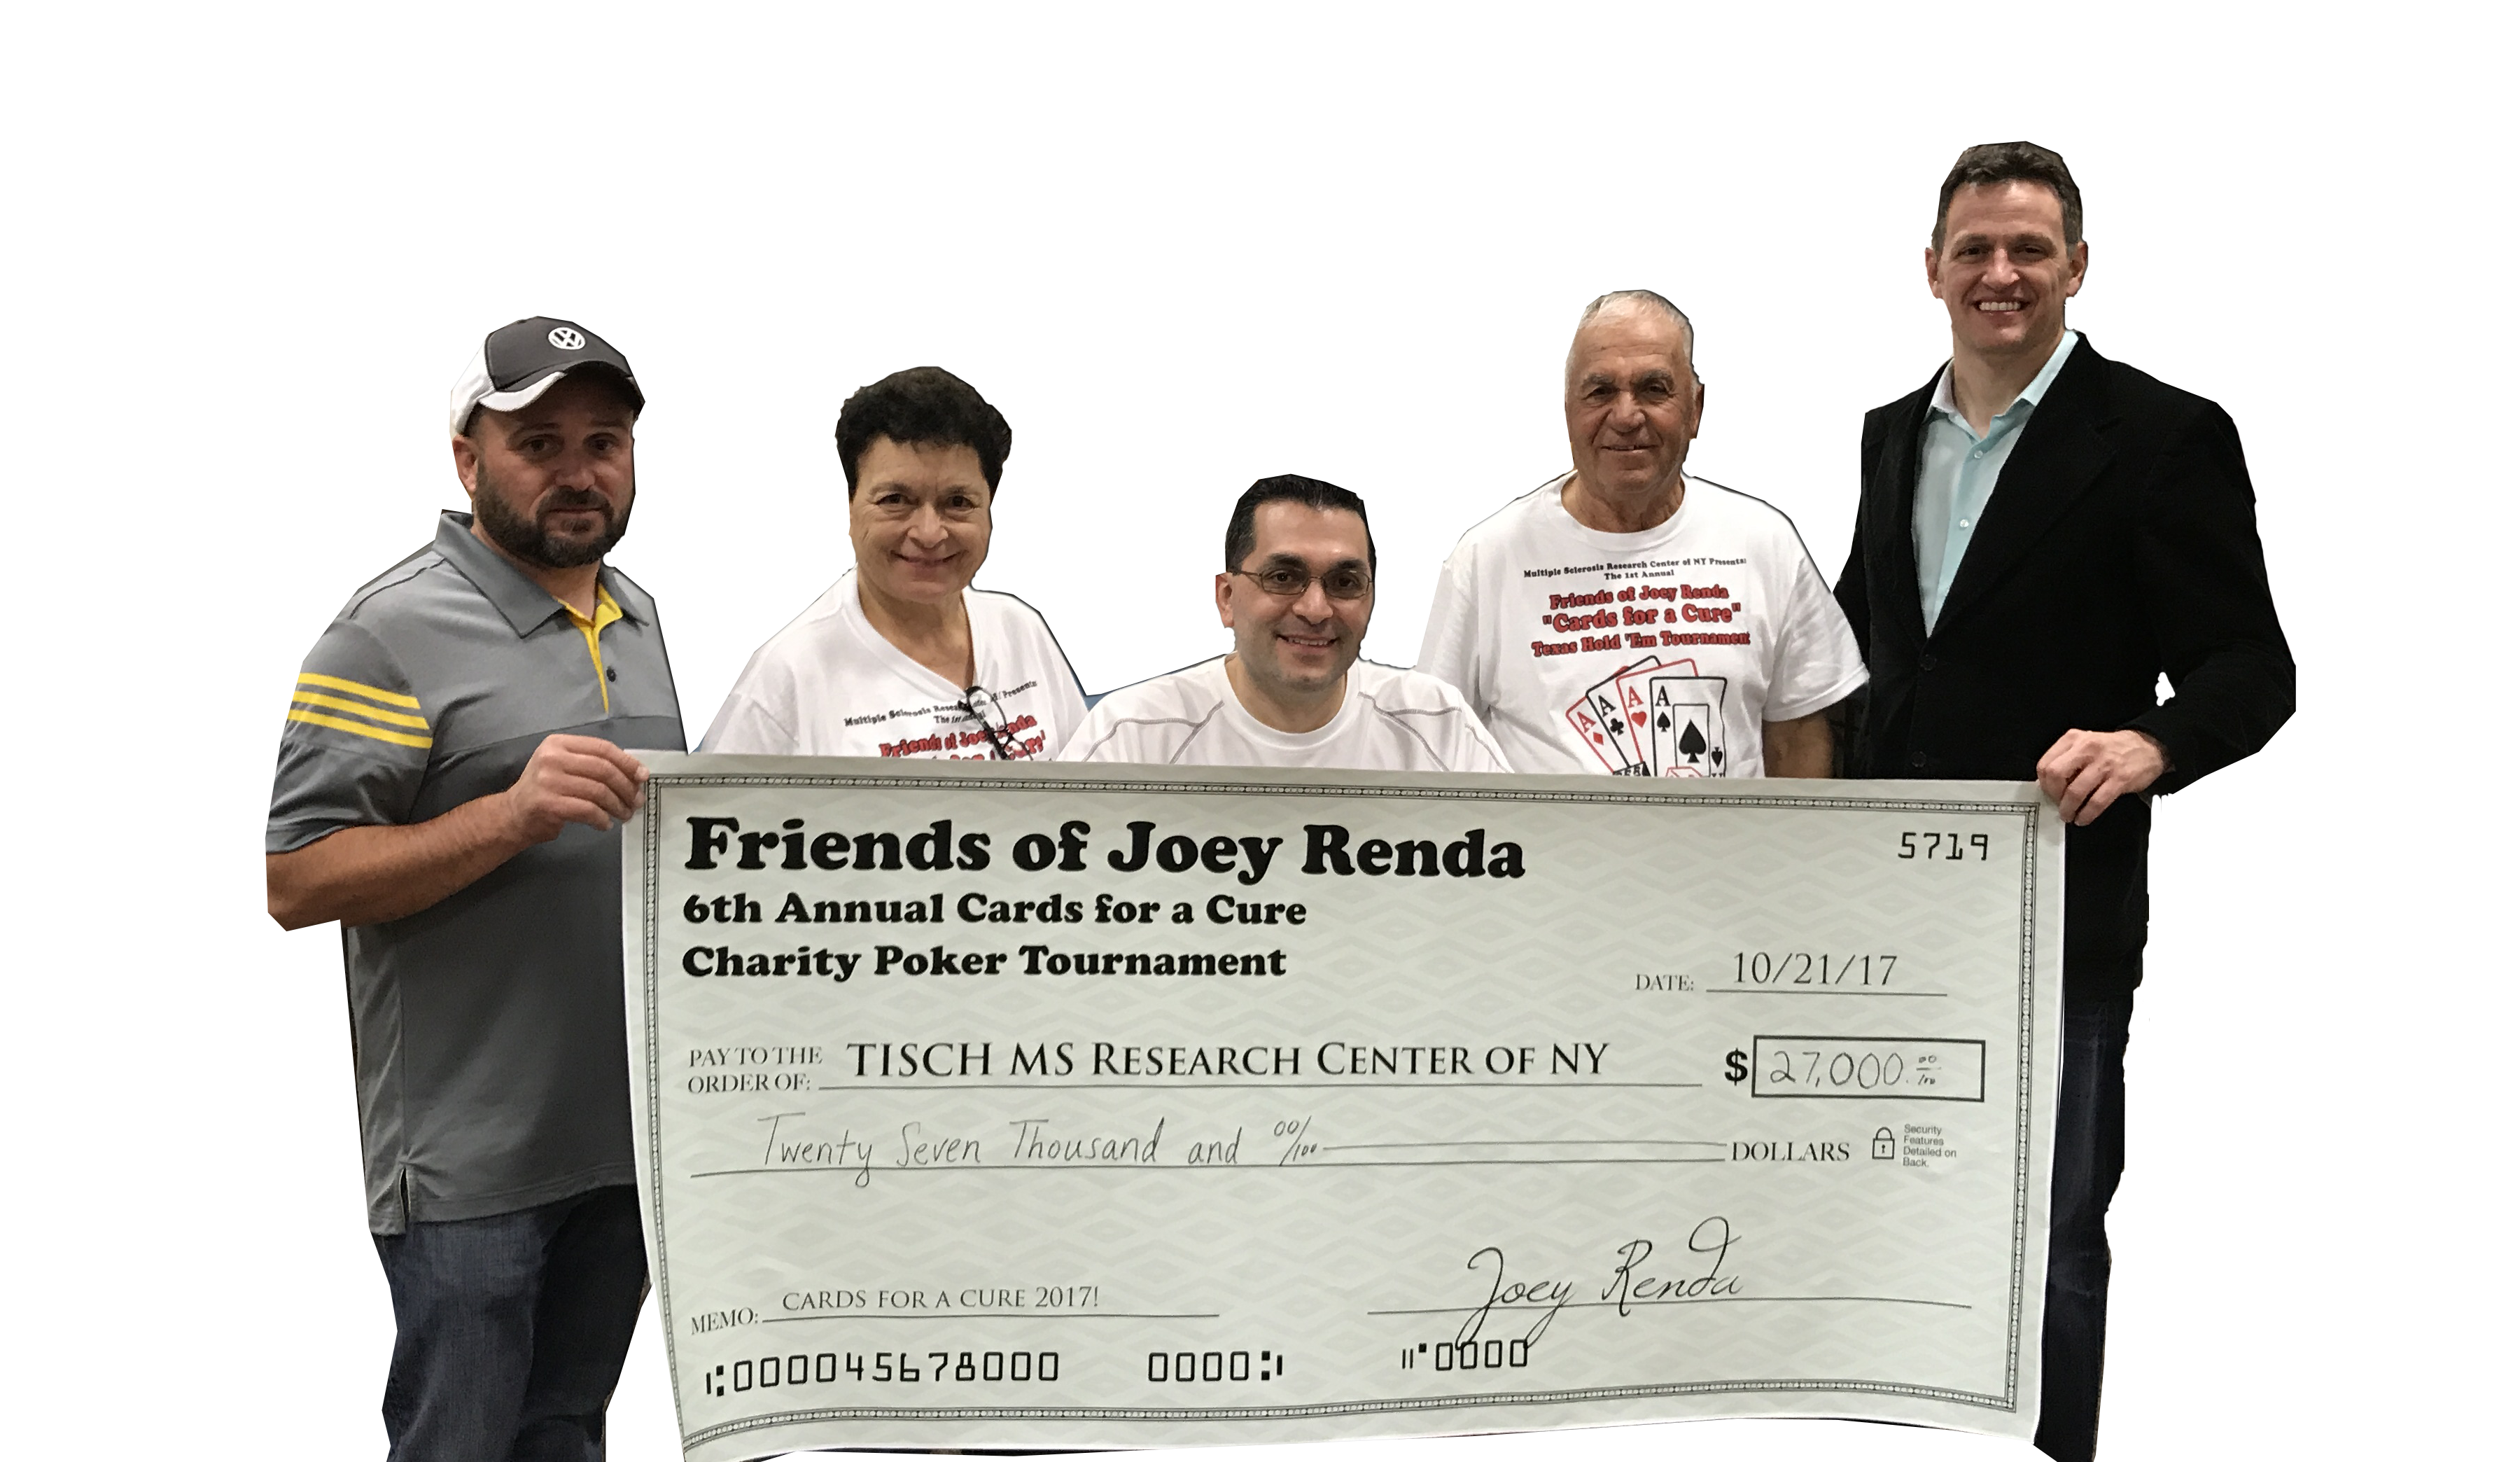 Friends of Joey Renda